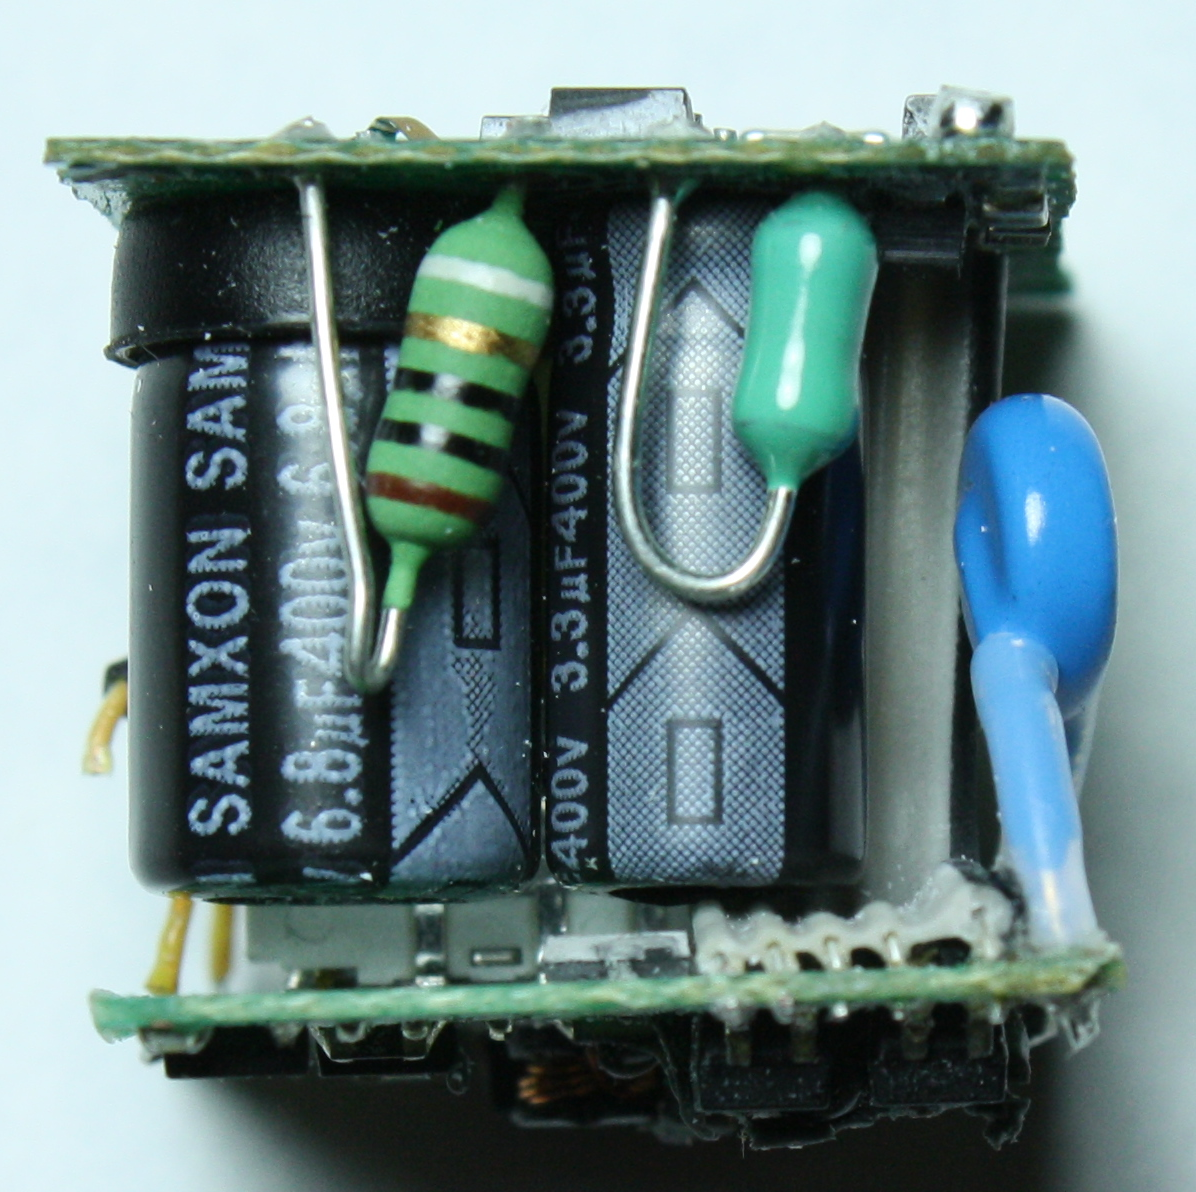 Apple Iphone Charger Teardown Quality In A Tiny Expensive Package 12 Volt To 6 Resistor Wiring Diagram Showing The Fusible Striped Inductor Green